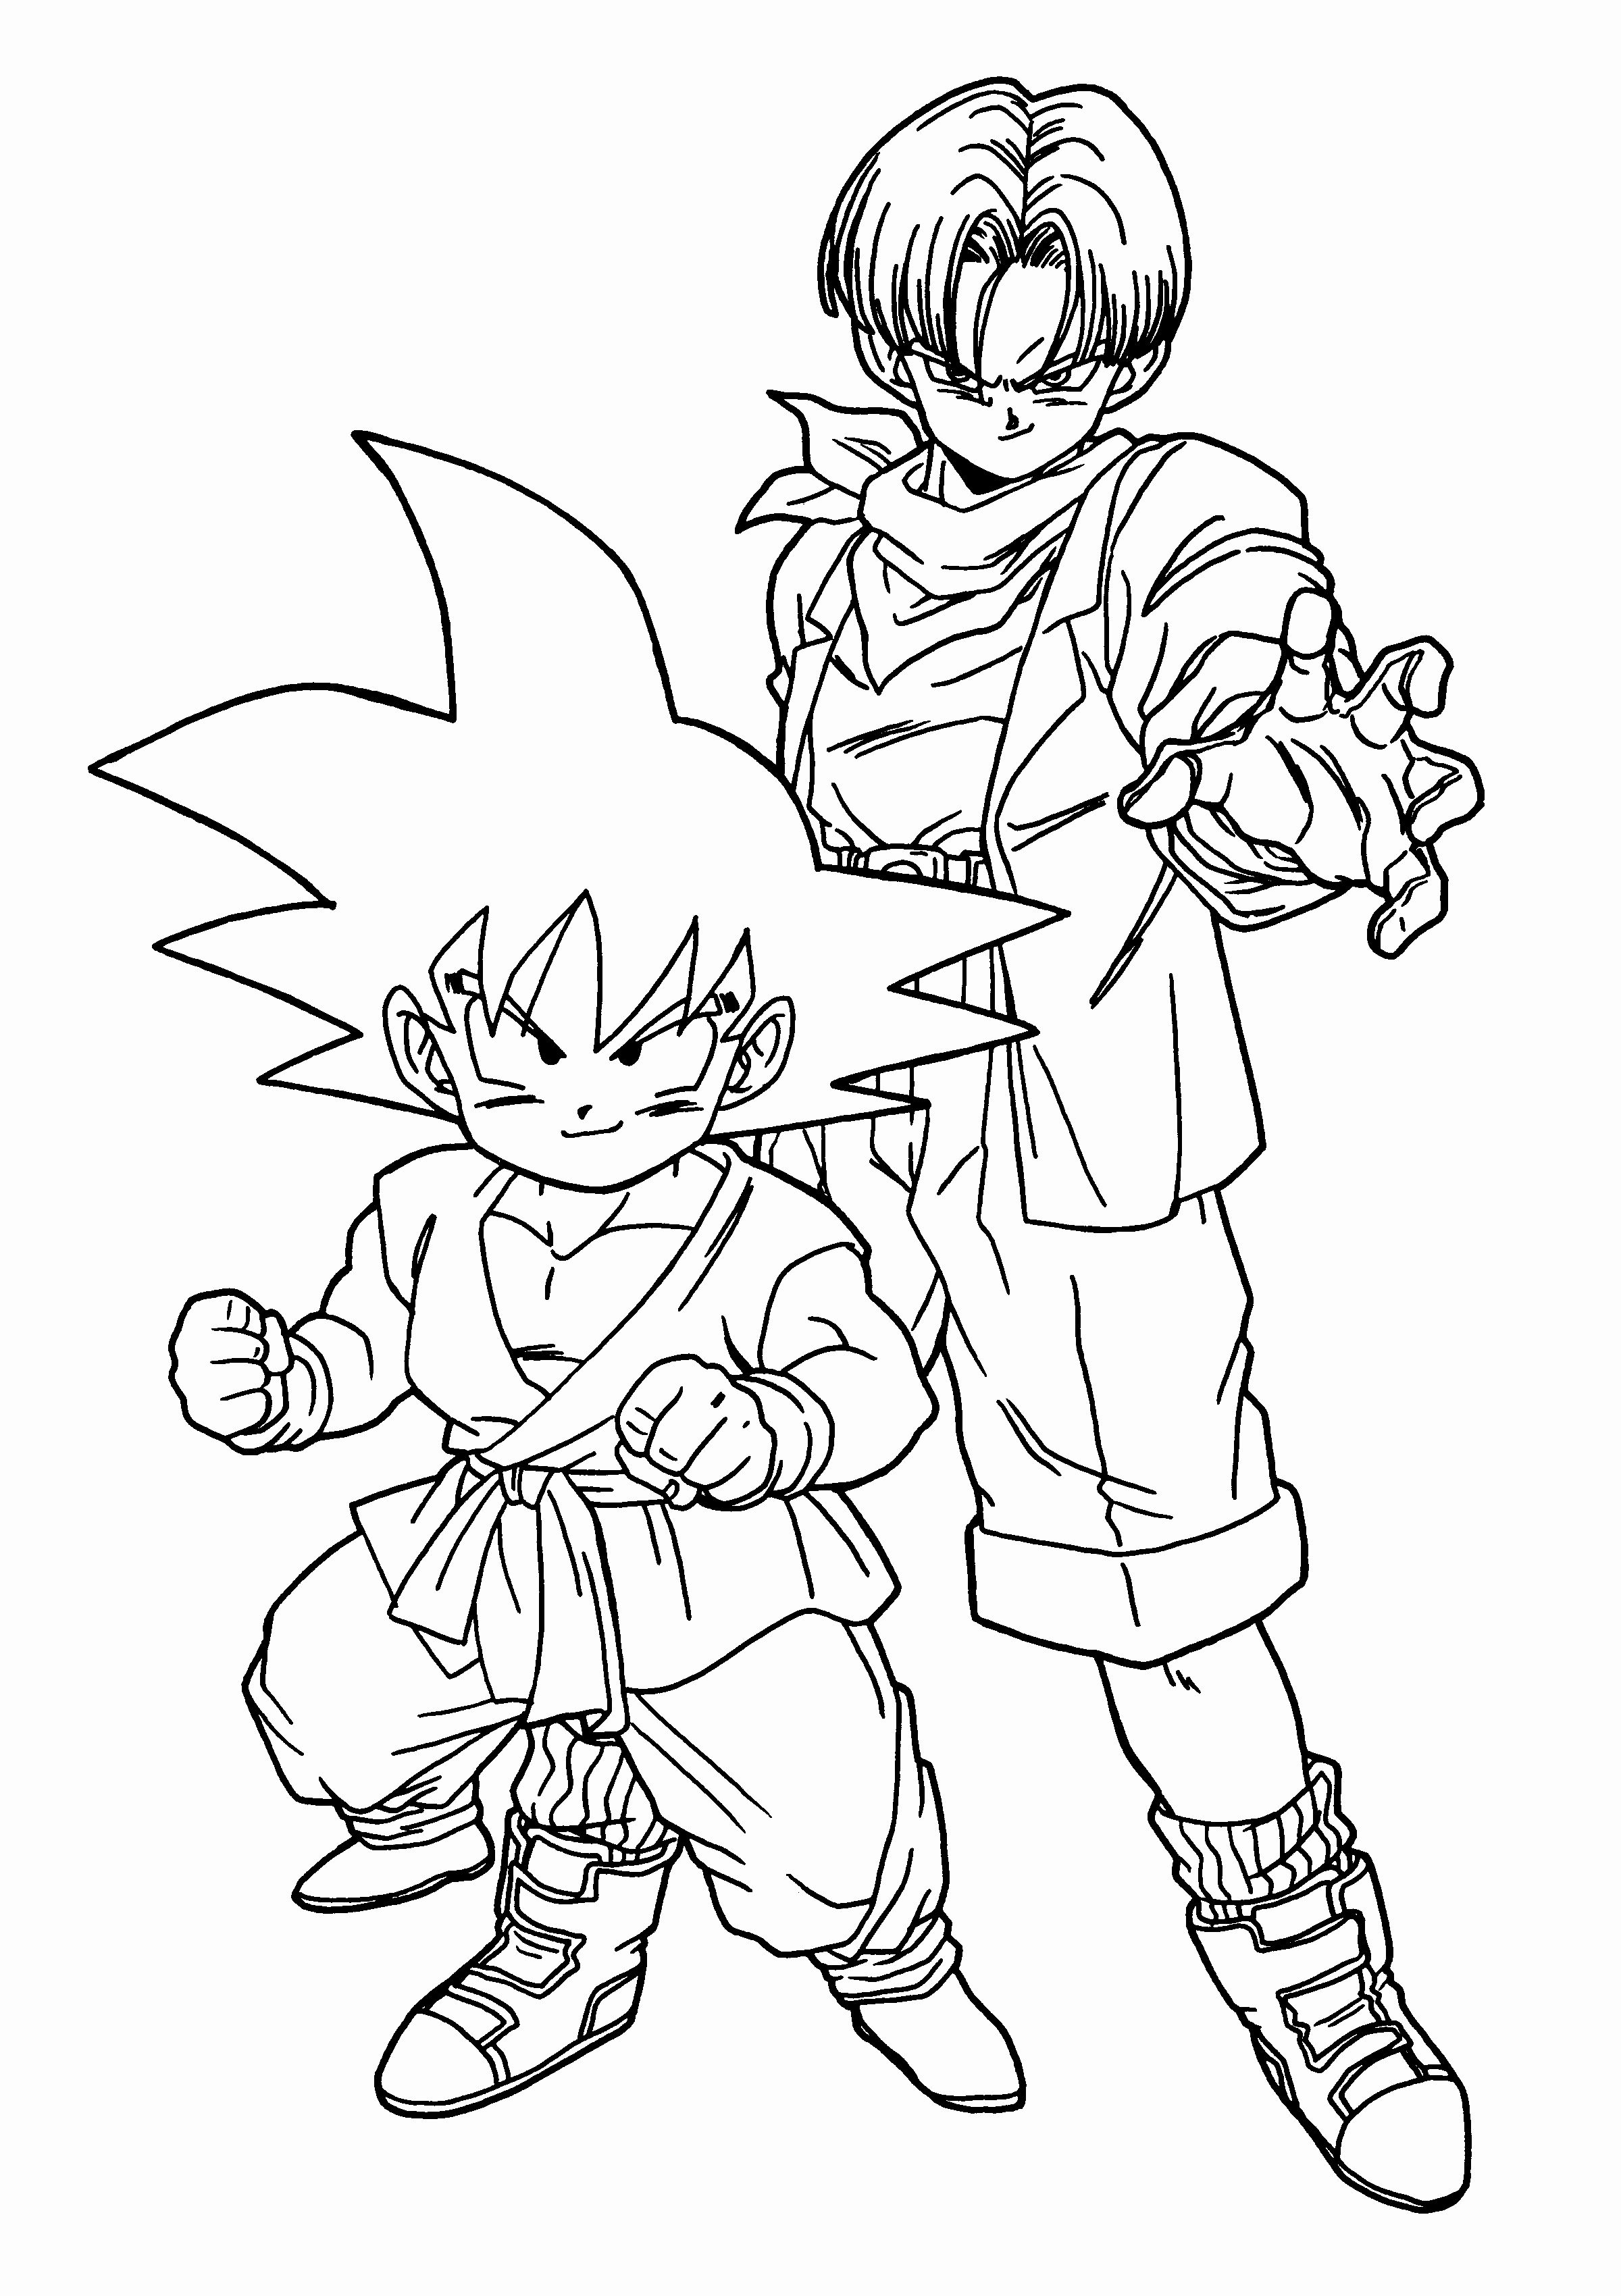 Dragon Ball Z Coloring Pages Printable Unique Dragon Ball Z Trunks Coloring Pages To Print Coloring Super Coloring Pages Cartoon Coloring Pages Coloring Books